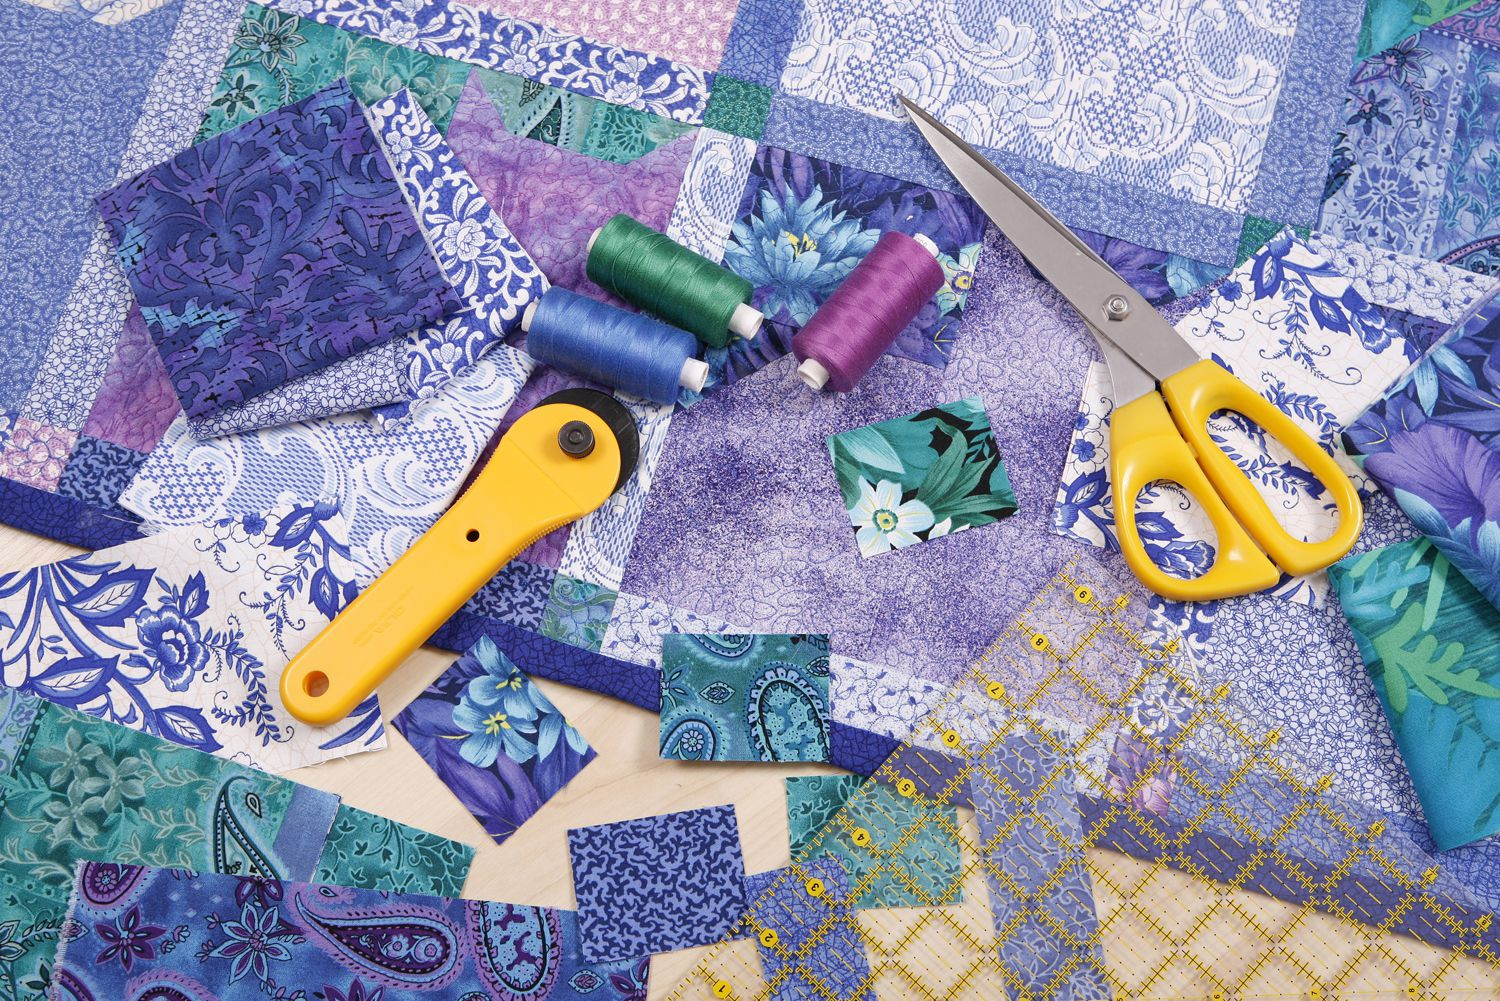 Quilting Tools : quilting tools and supplies - Adamdwight.com